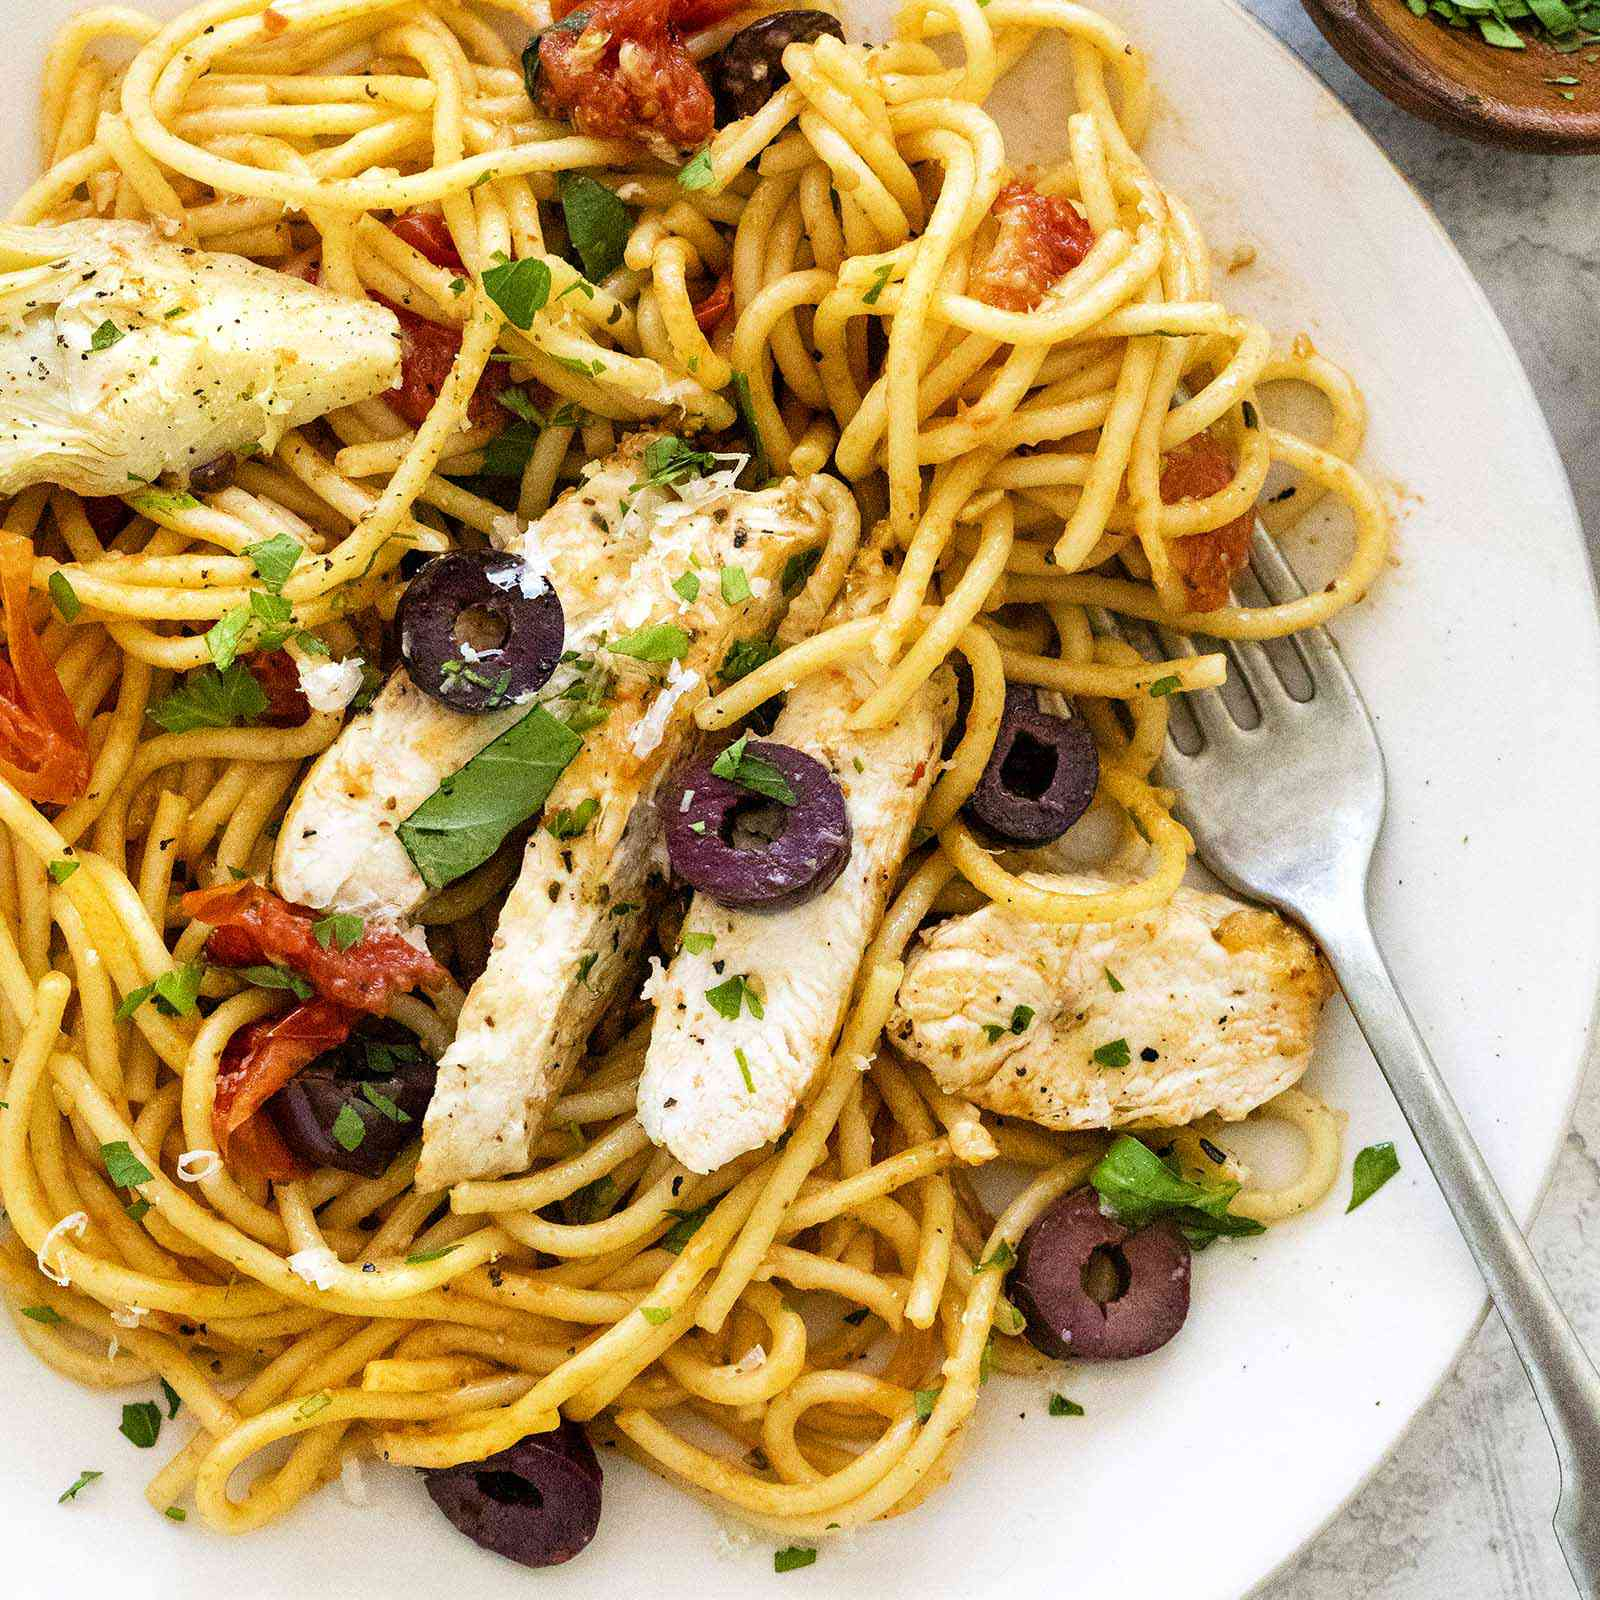 Overhead view of a plate of chicken pasta skillet dinner. Spaghetti, sliced chicken, olives and tomatoes are mixed together on a white plate along with a fork.